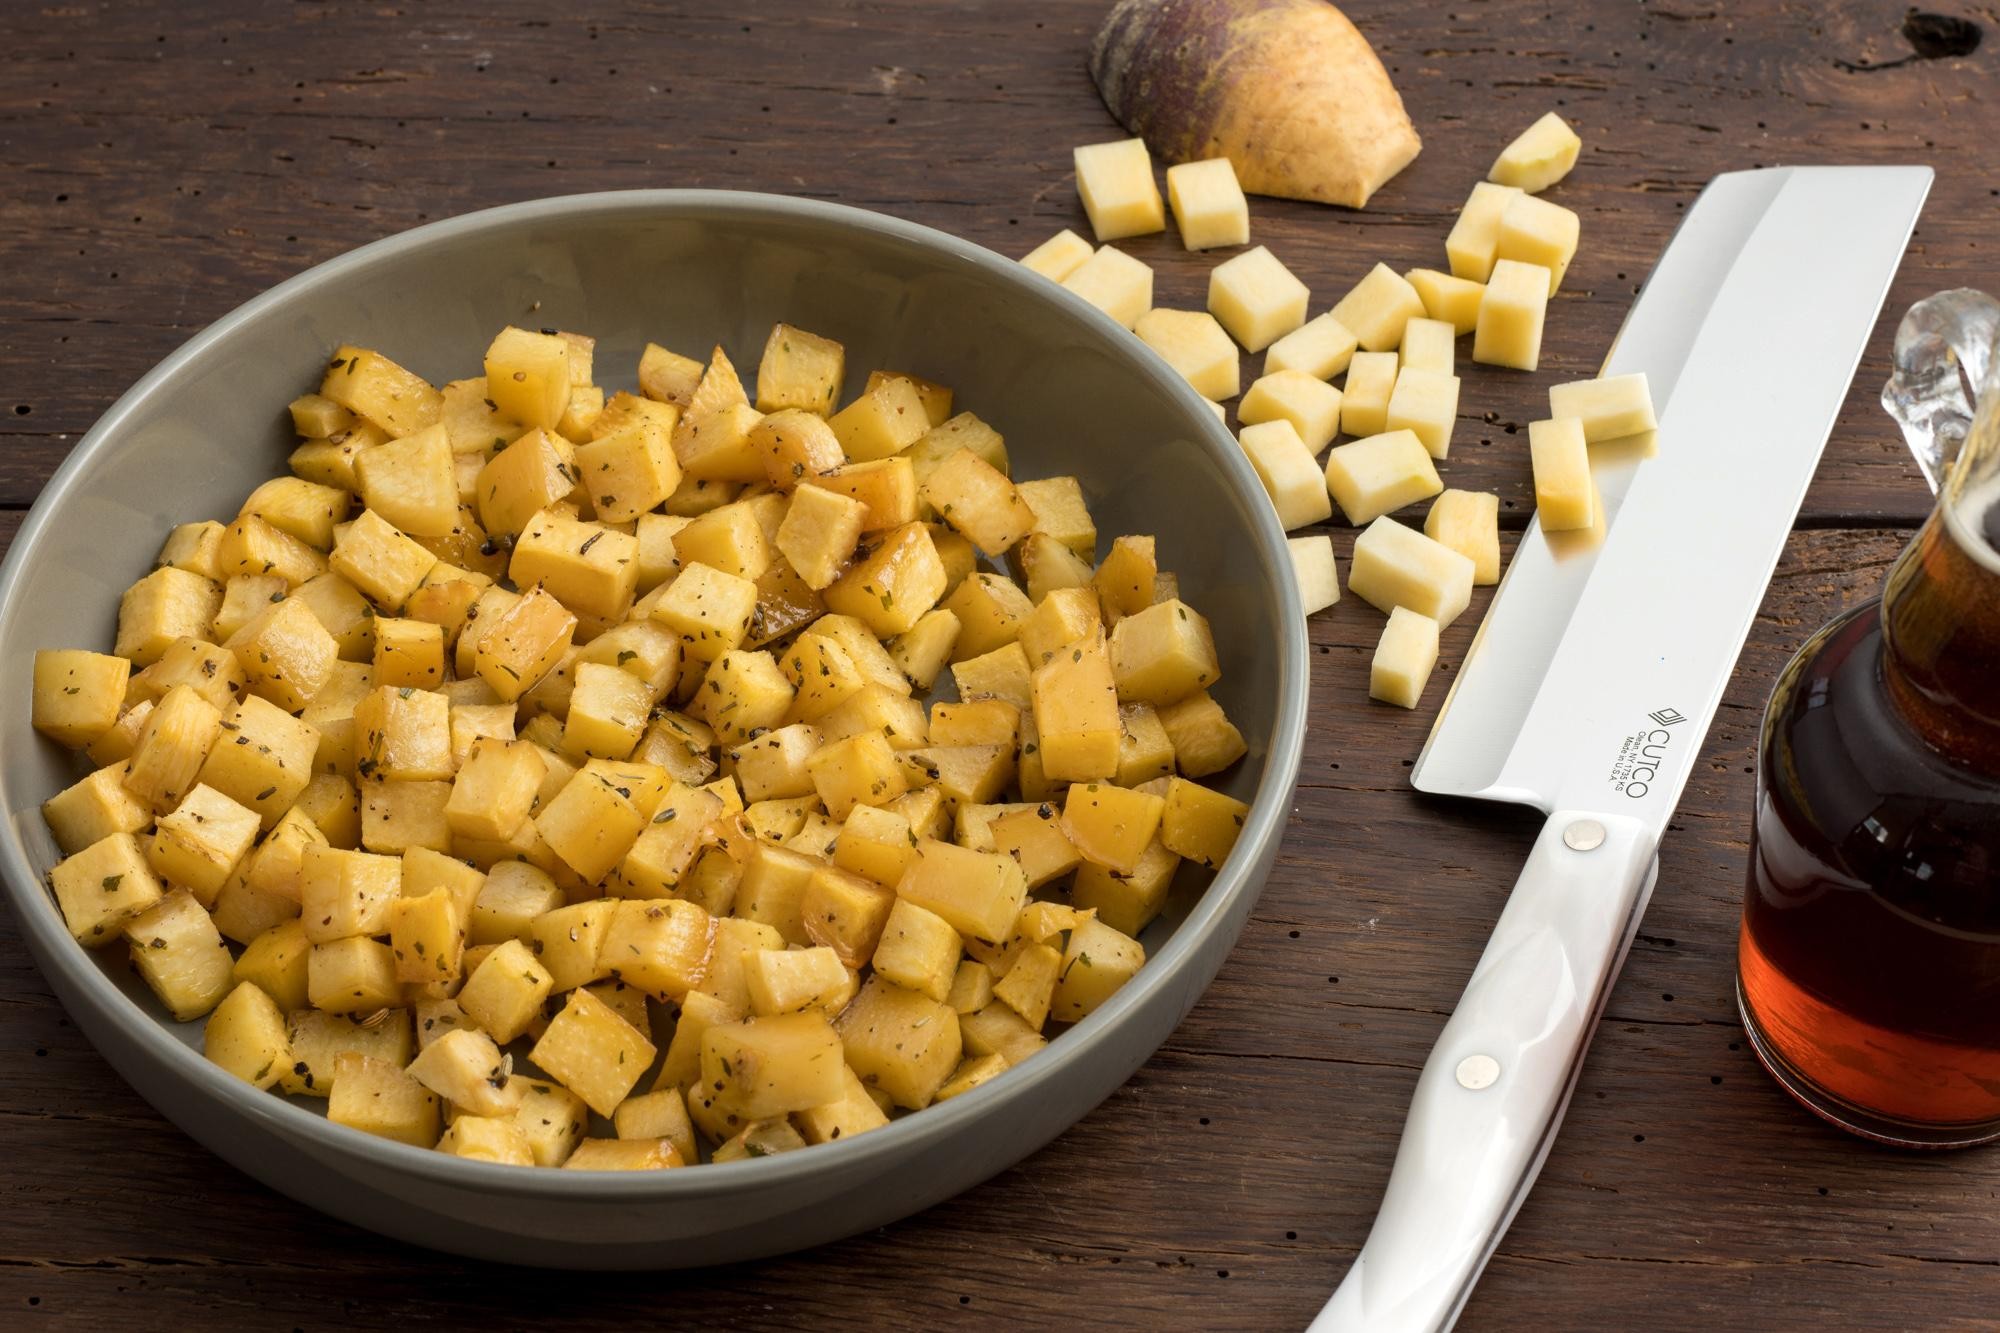 Roasted Rutabaga with Maple Syrup